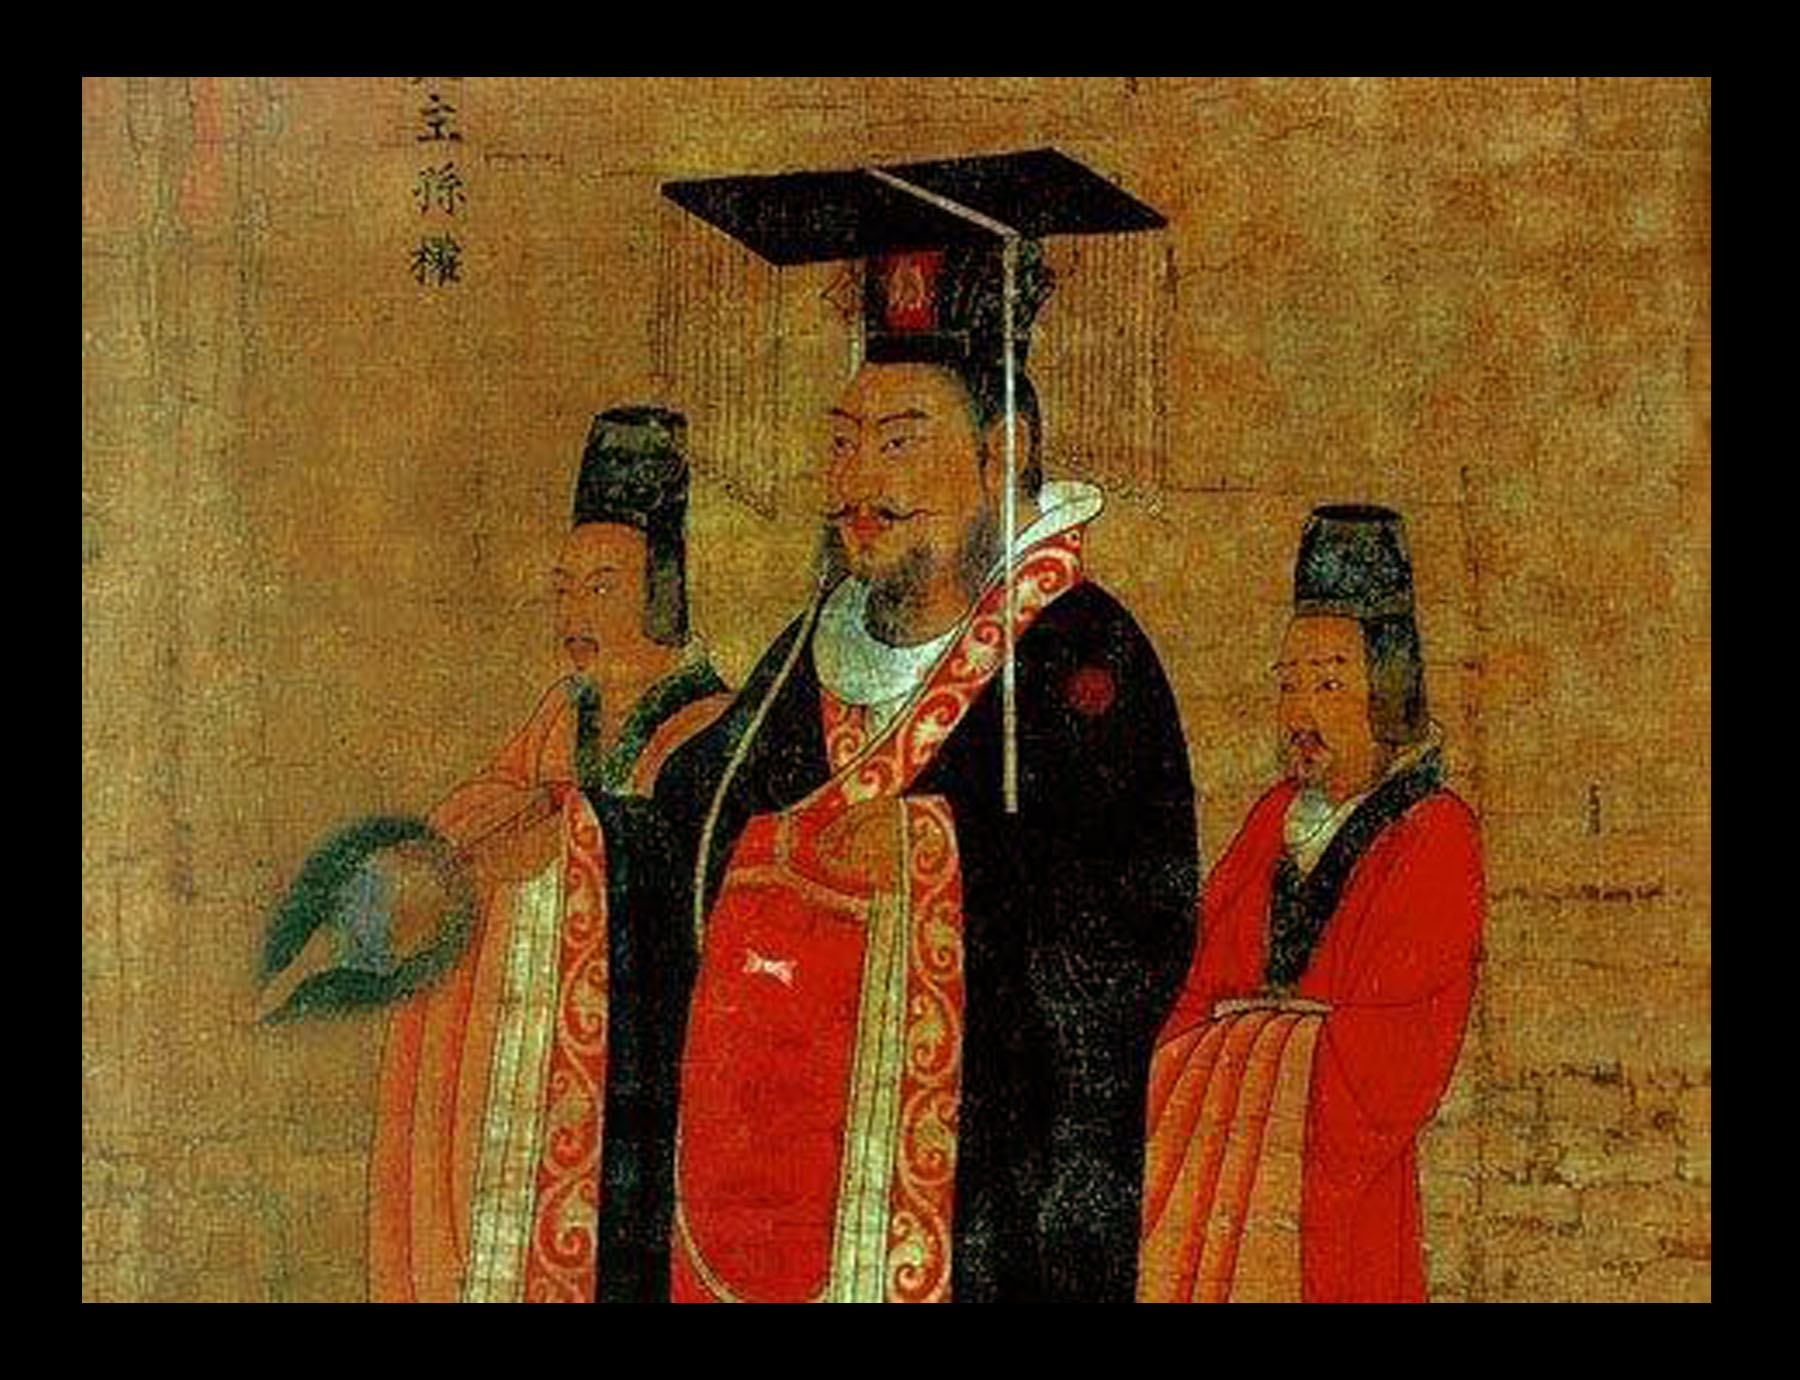 chinese history qin dynasty law system Qin dynasty (221–207 bc) is the first empire that united china it lasts about fourteen years, in which there are three emperors it affects the history and development of ancient china like unifying the currency and words, formulating the law, constructing the great wall, and establishing a highly centralized system of government, etc.